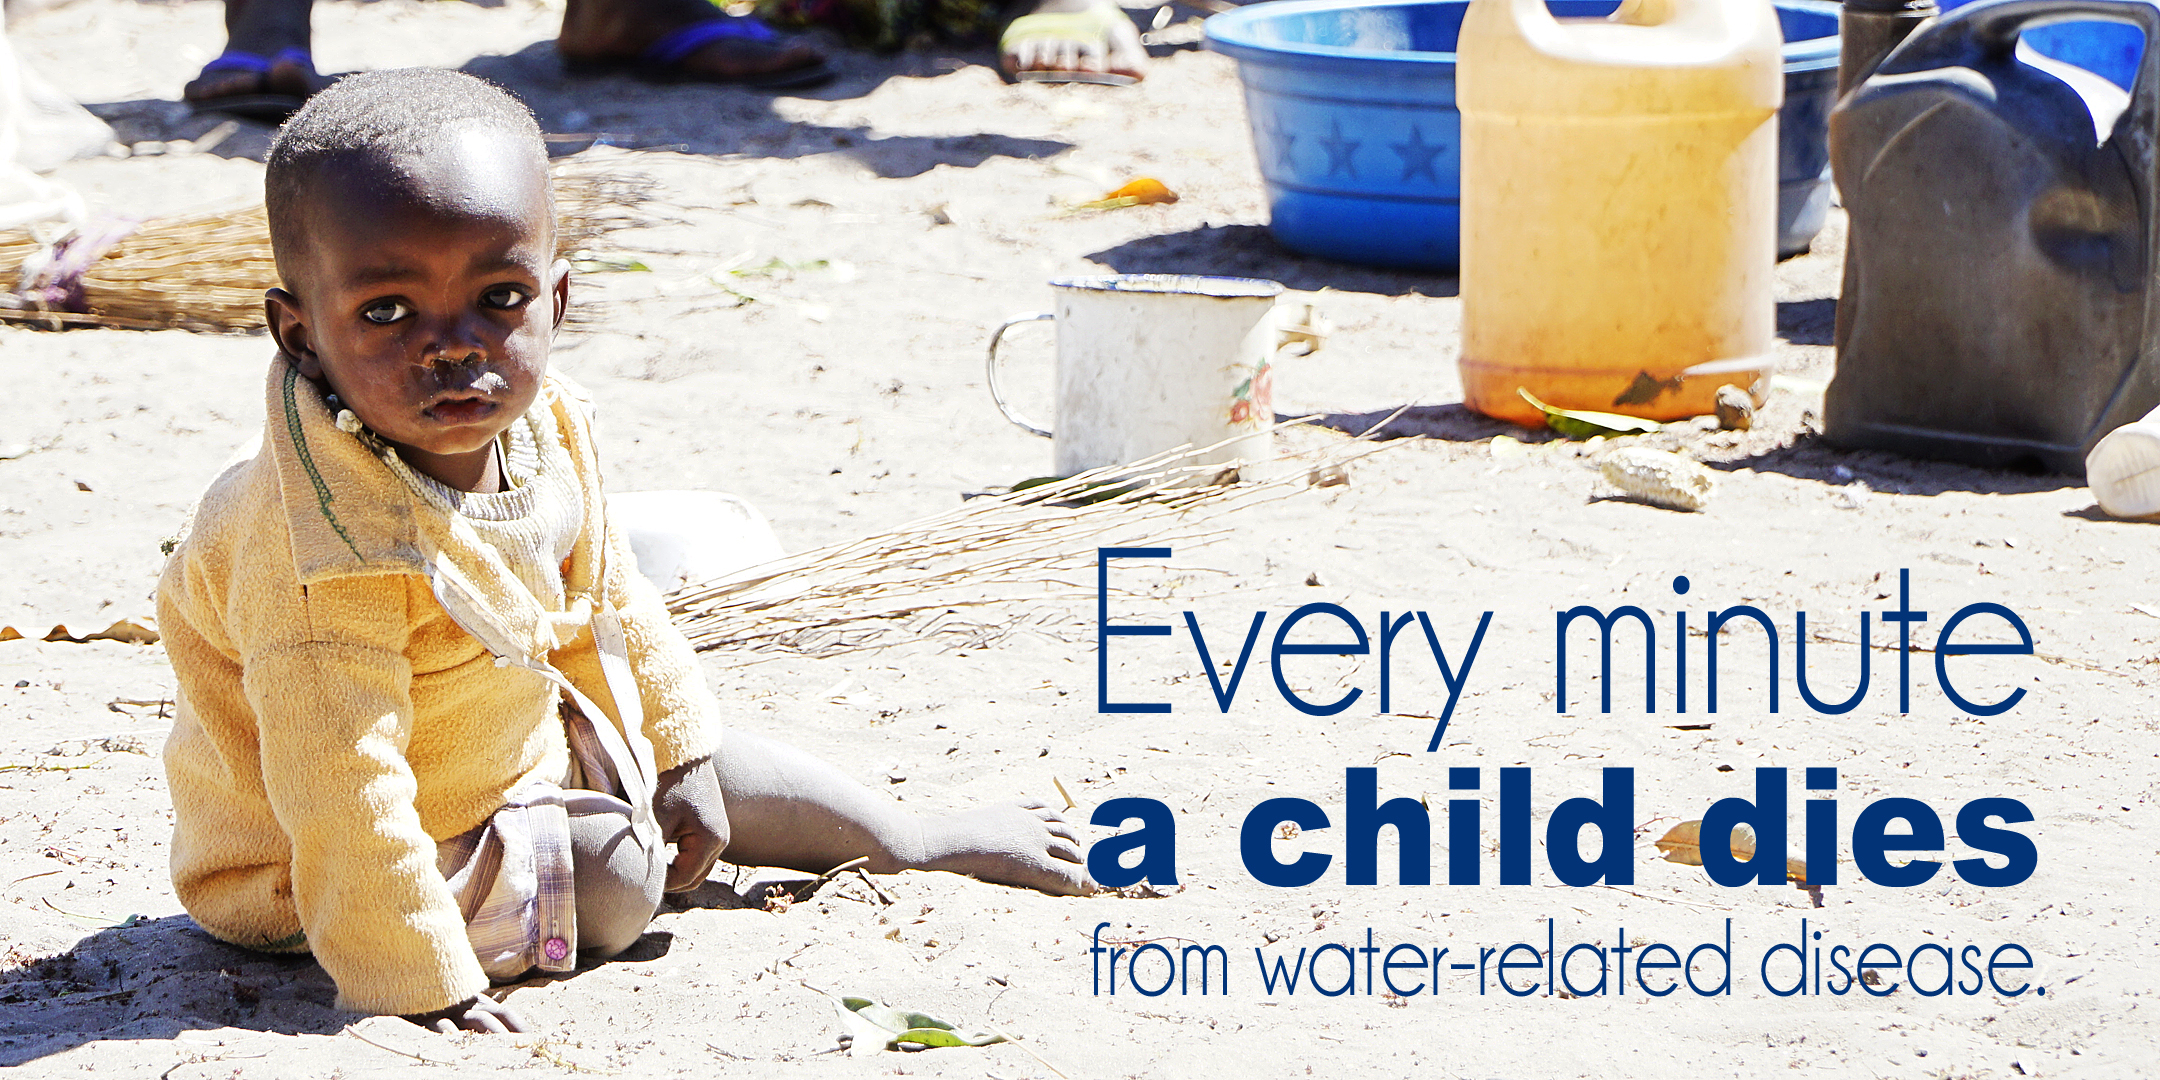 cleansafewater, clean safe water